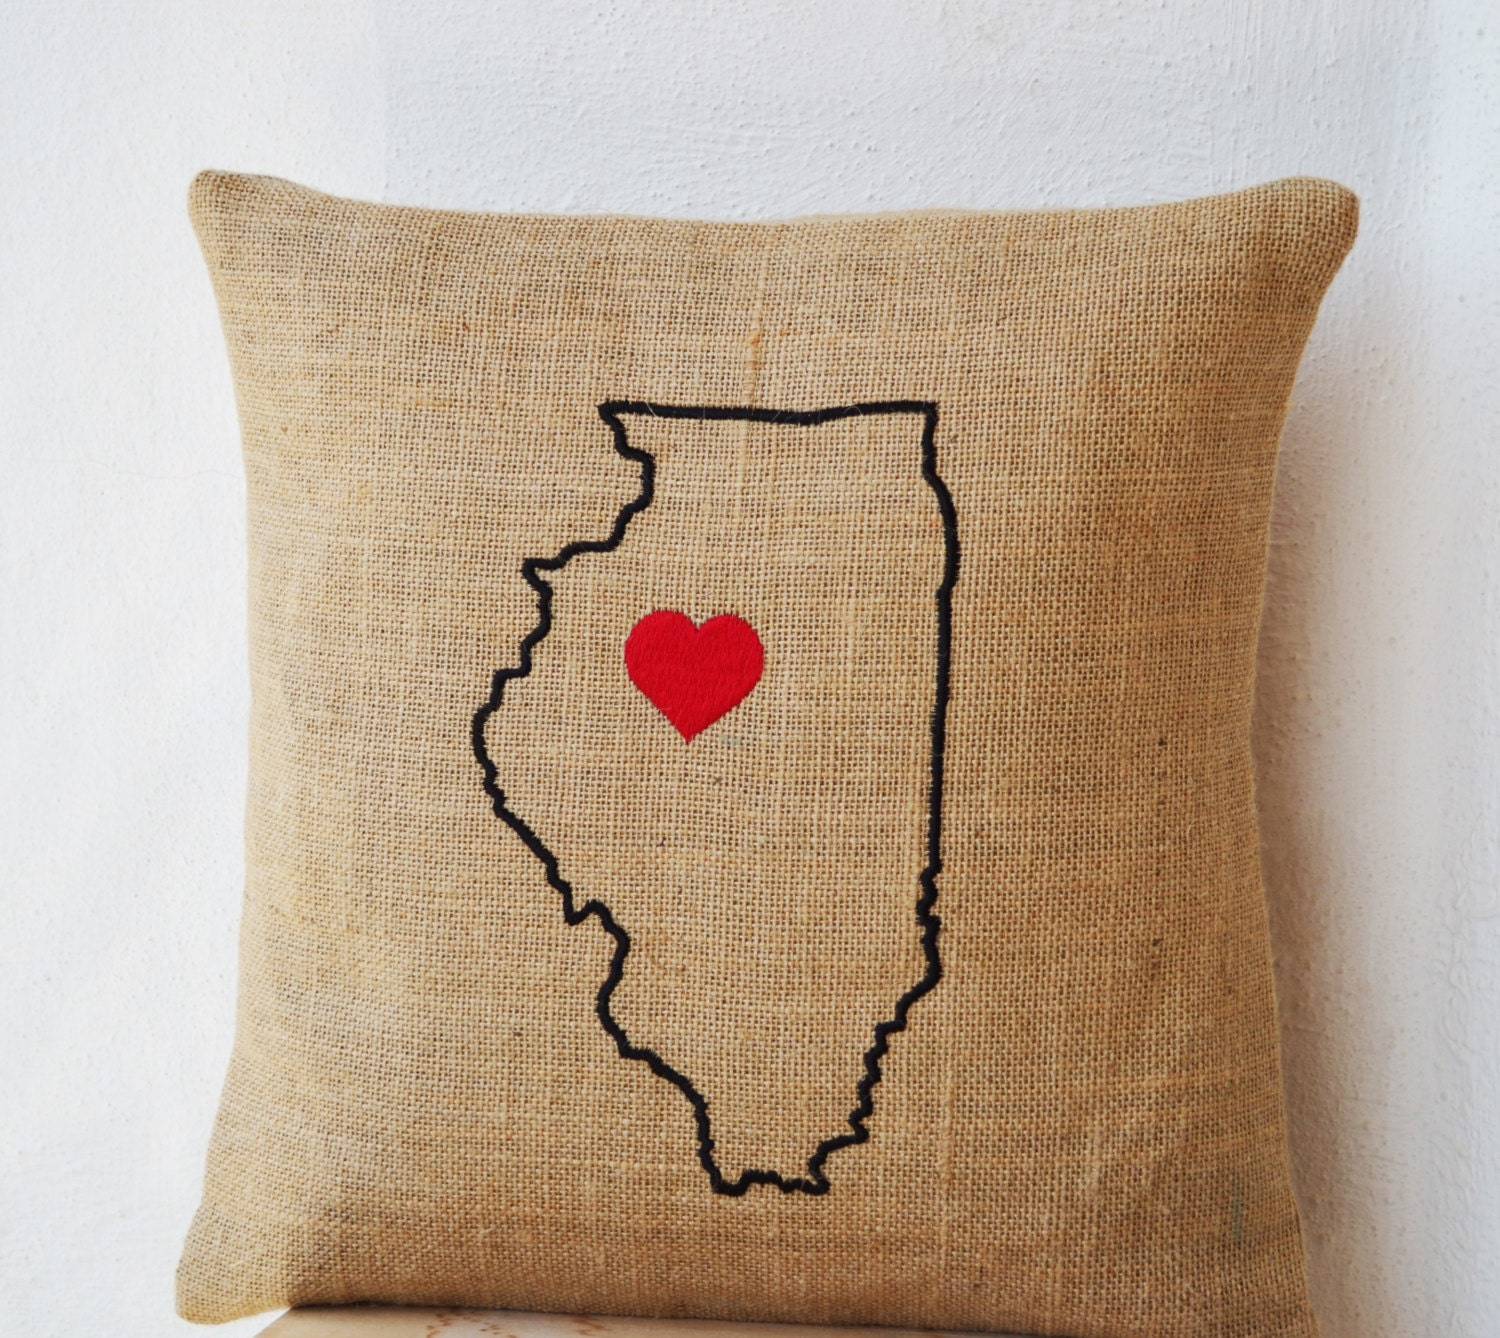 ARIZONA HAND-EMBROIDERED PILLOW - geography (hand-embroidered ...